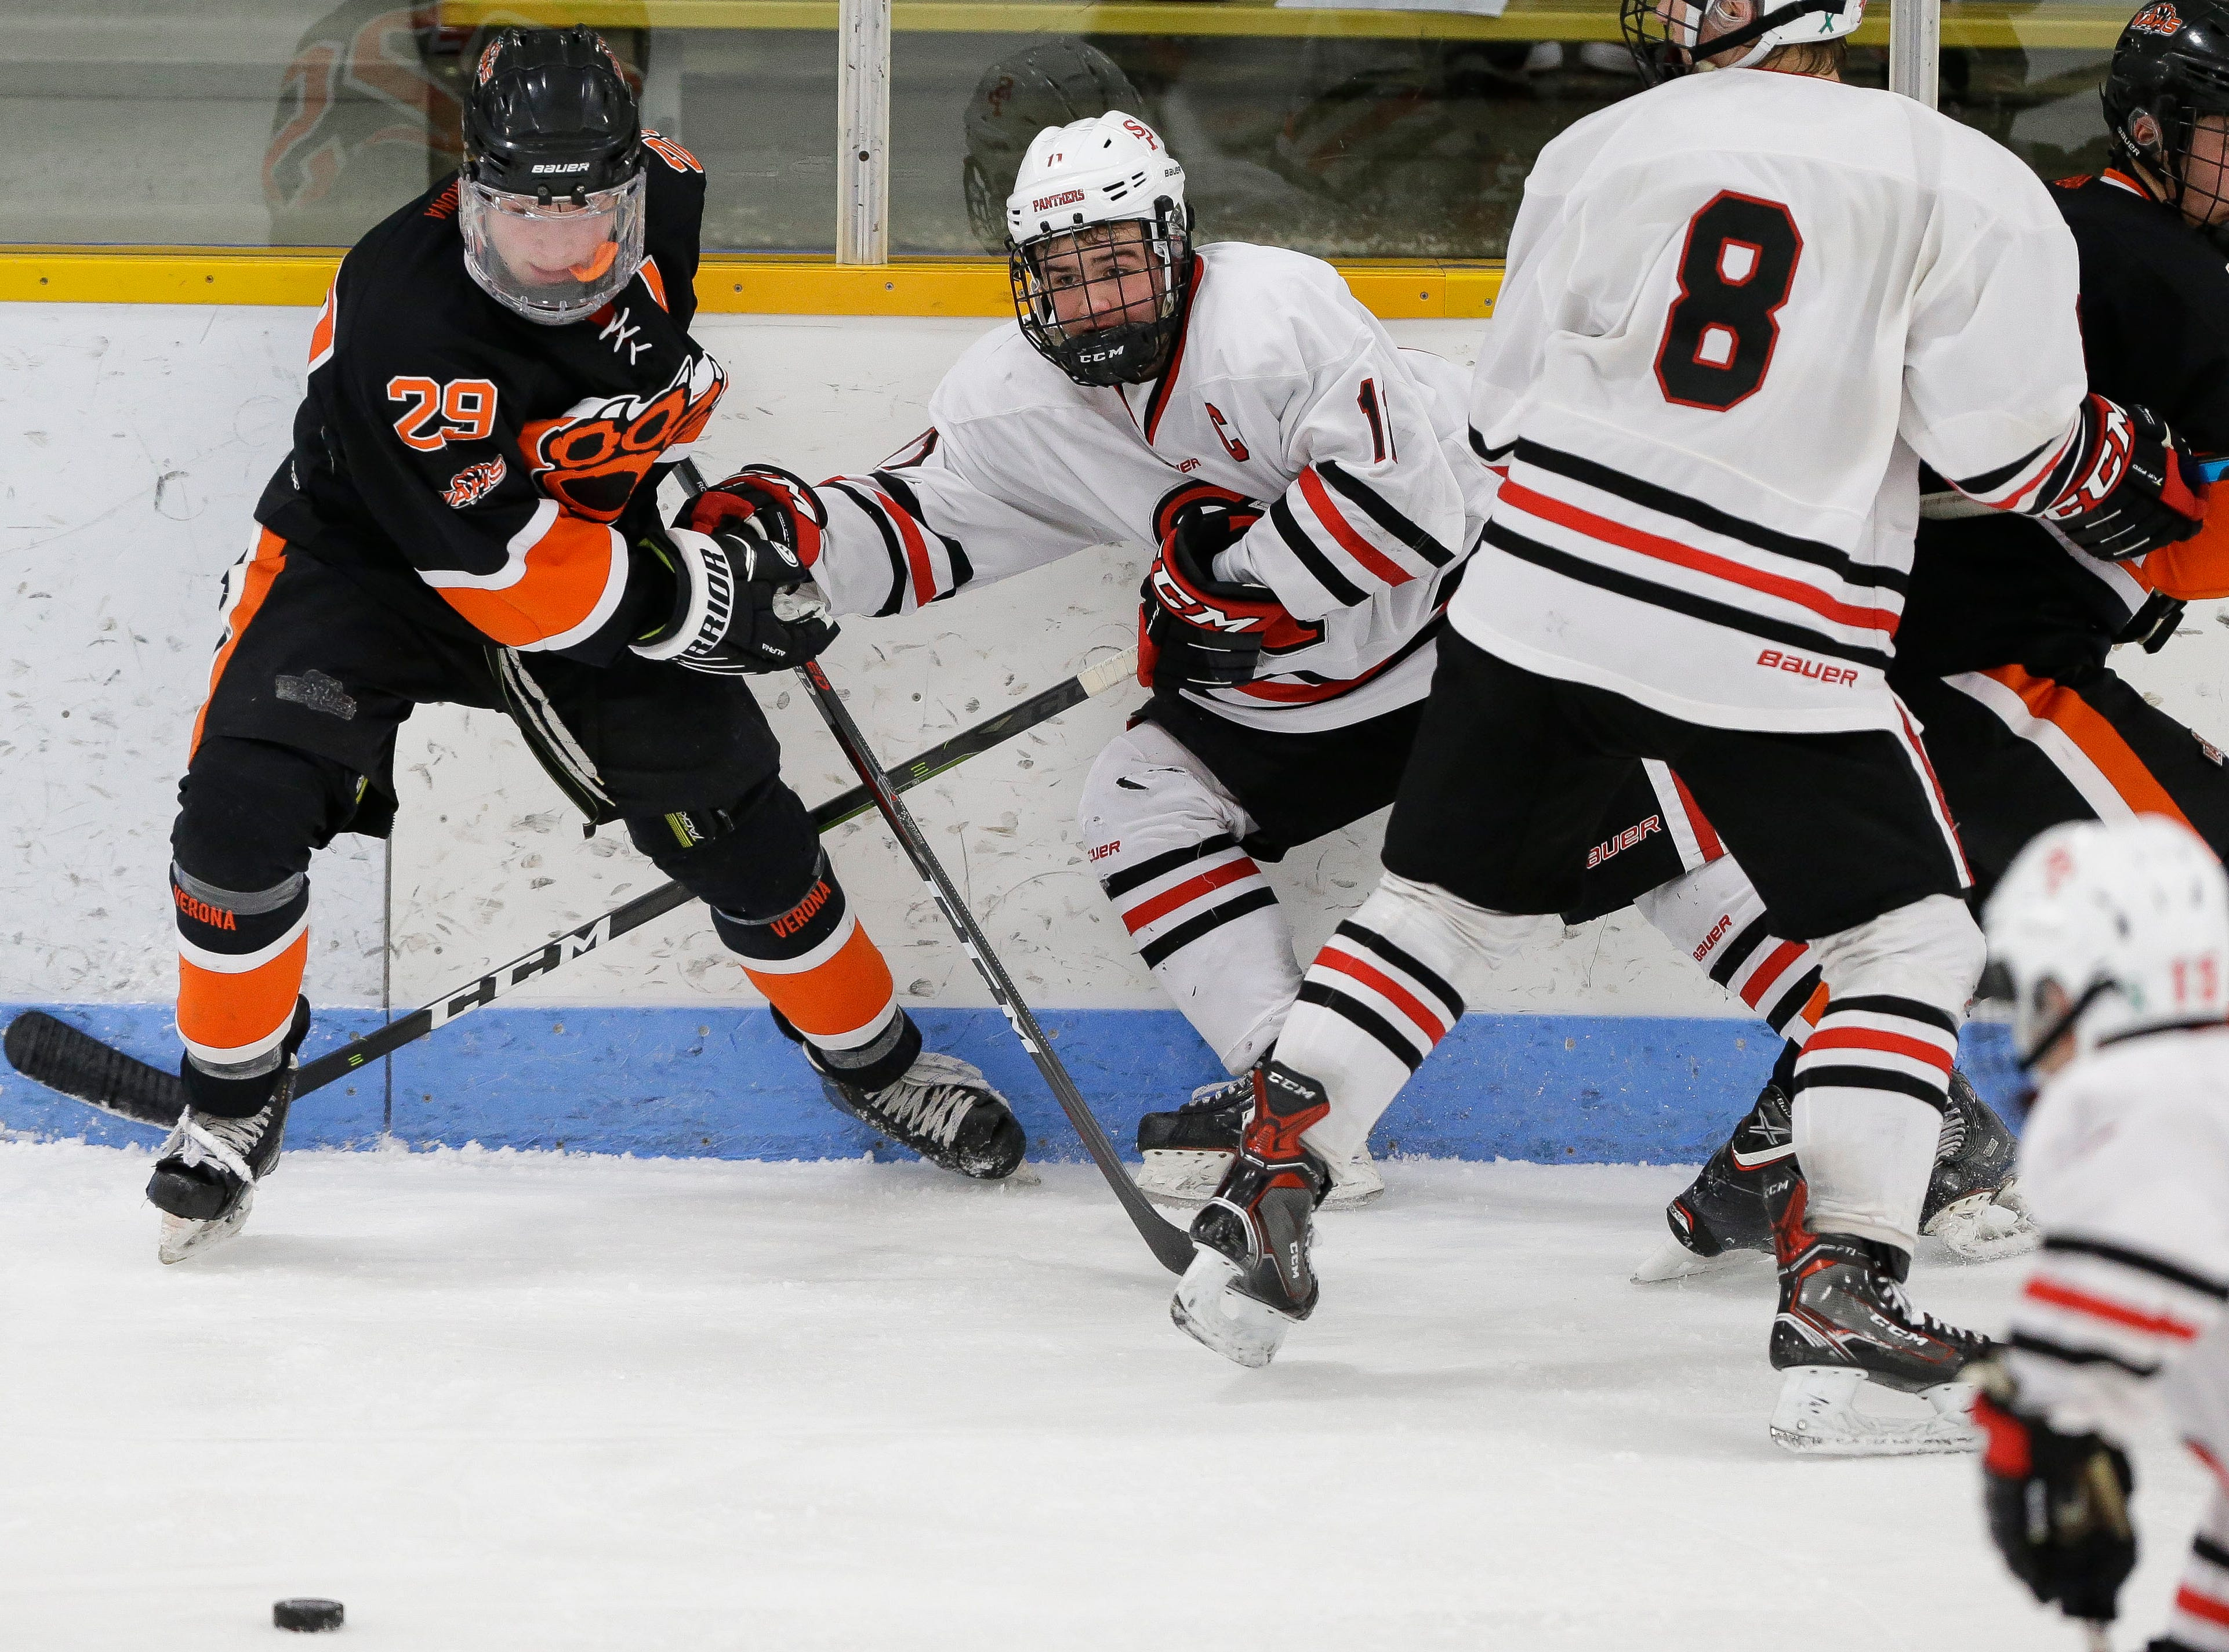 Verona's Mack Keryluk (29) passes the puck out of a scrum along the boards against SPASH on Saturday, January 26, 2019, at K.B. Willett Ice Arena in Stevens Point, Wis. Tork Mason/USA TODAY NETWORK-Wisconsin